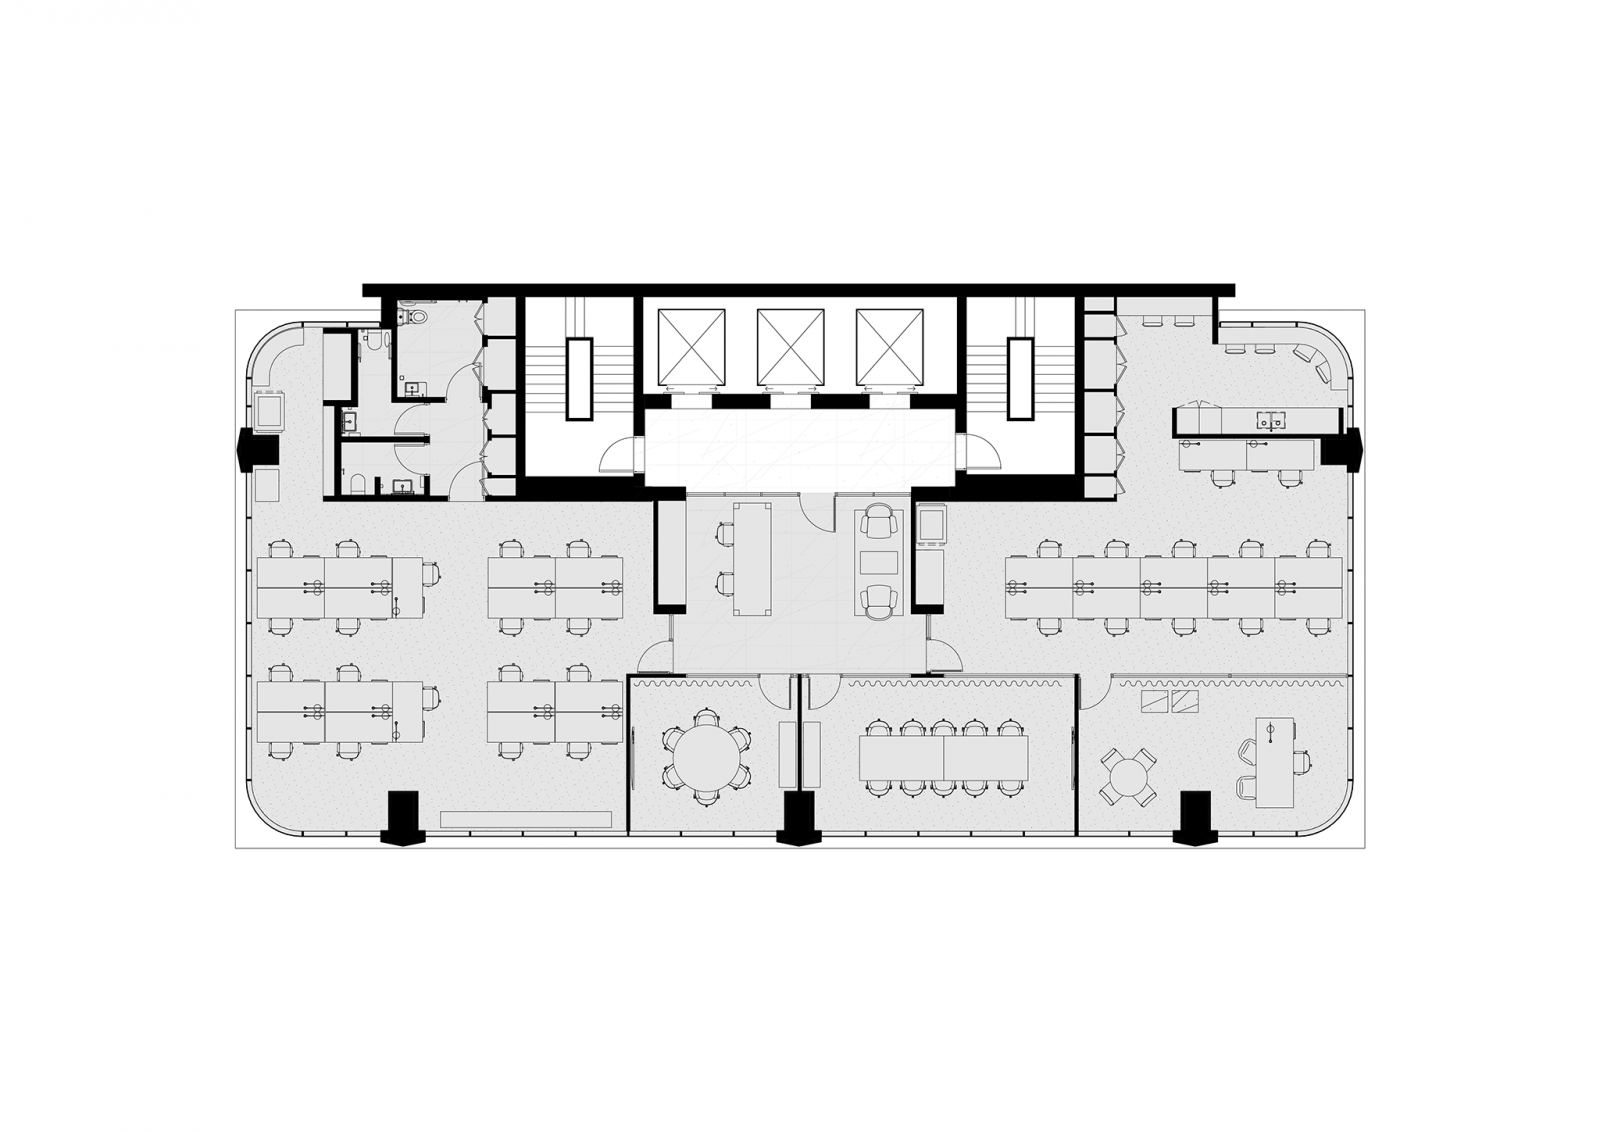 Tower floorplan, levels 9, 11, 15 & 19, single tenancy, 1:10 population ratio